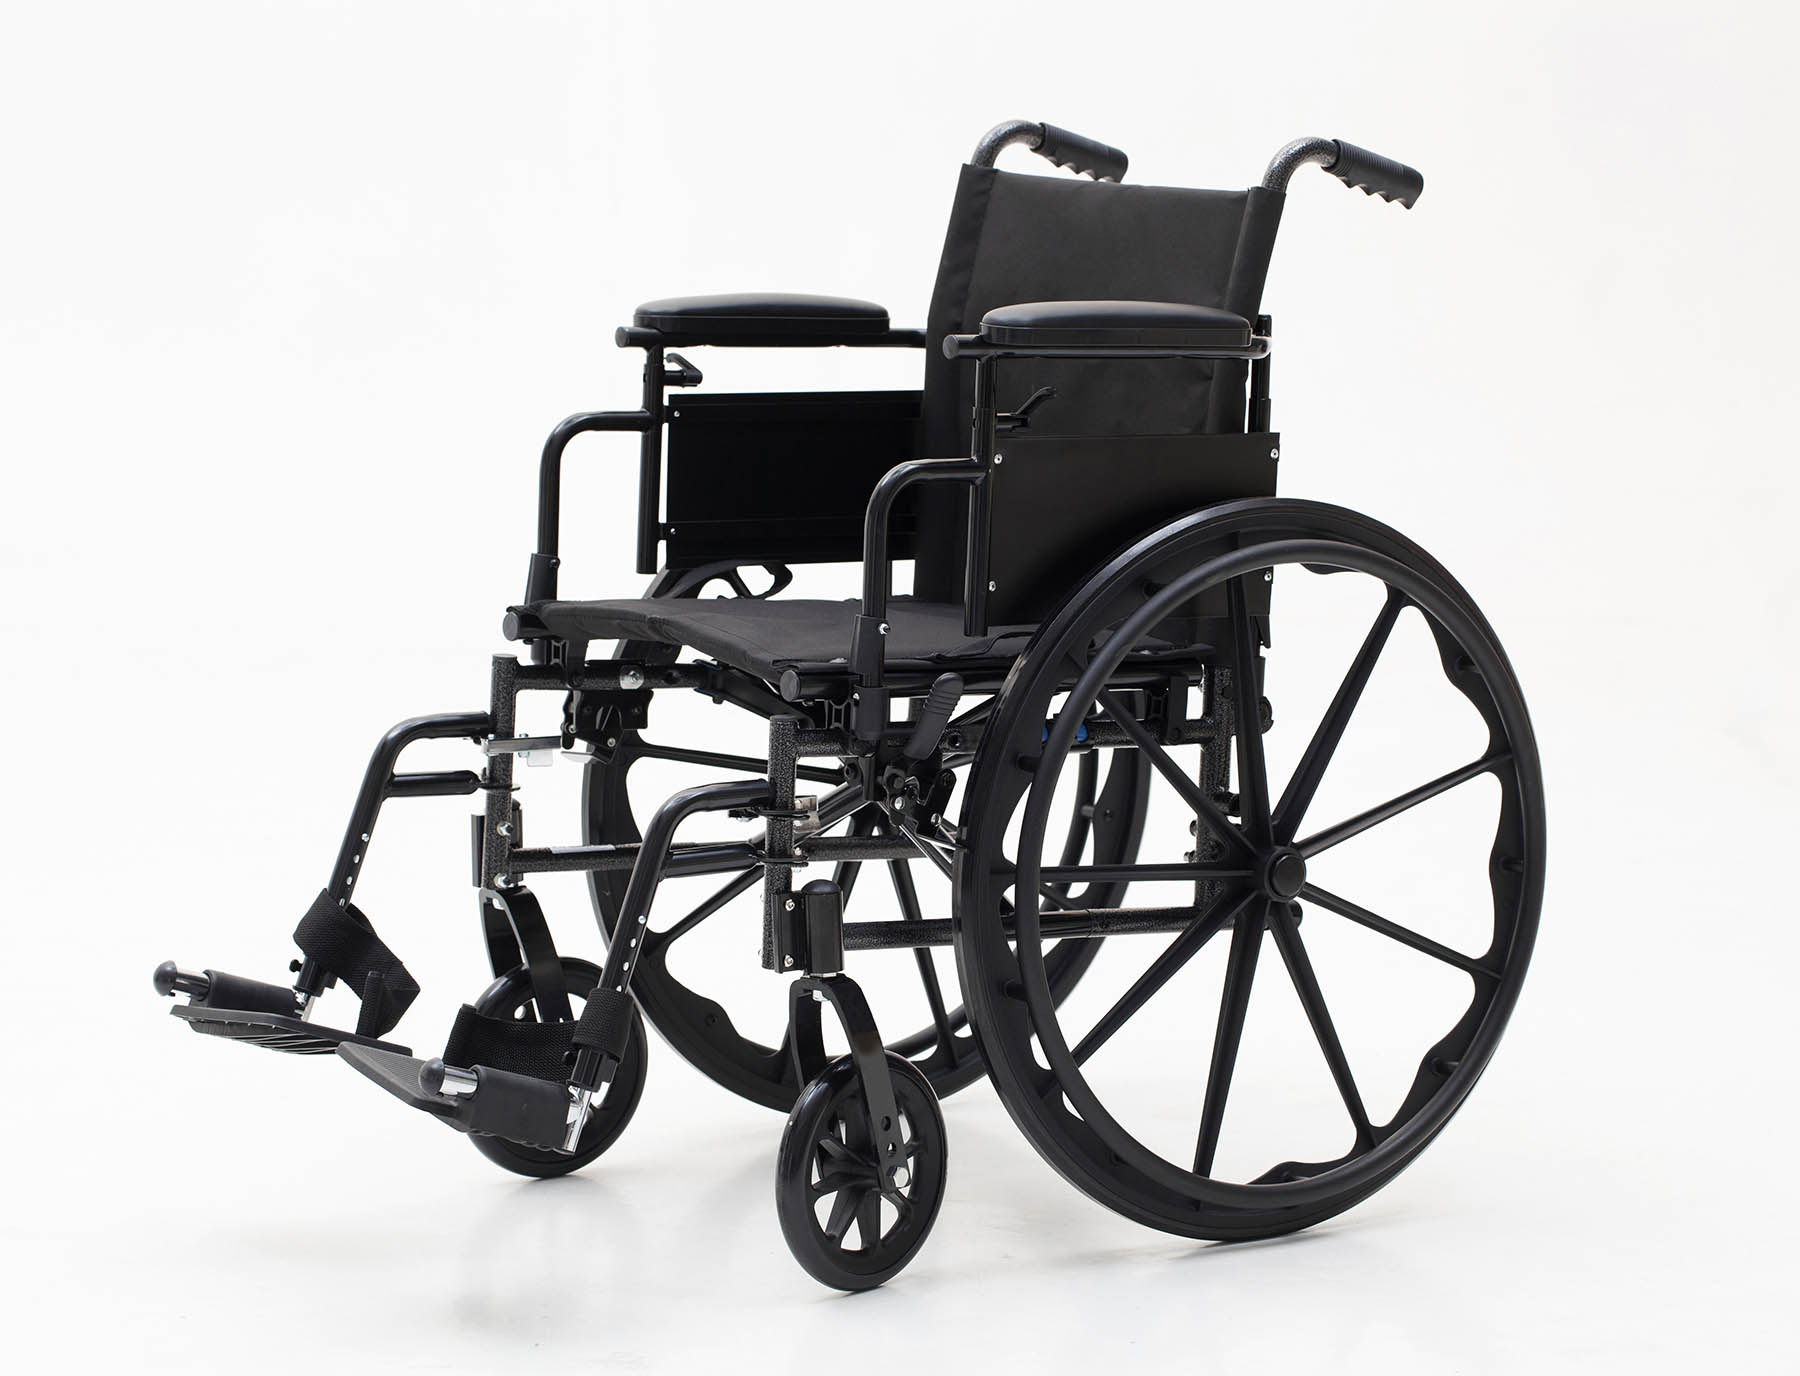 YJ-K401-1 Functional Steel Manual Wheelchair